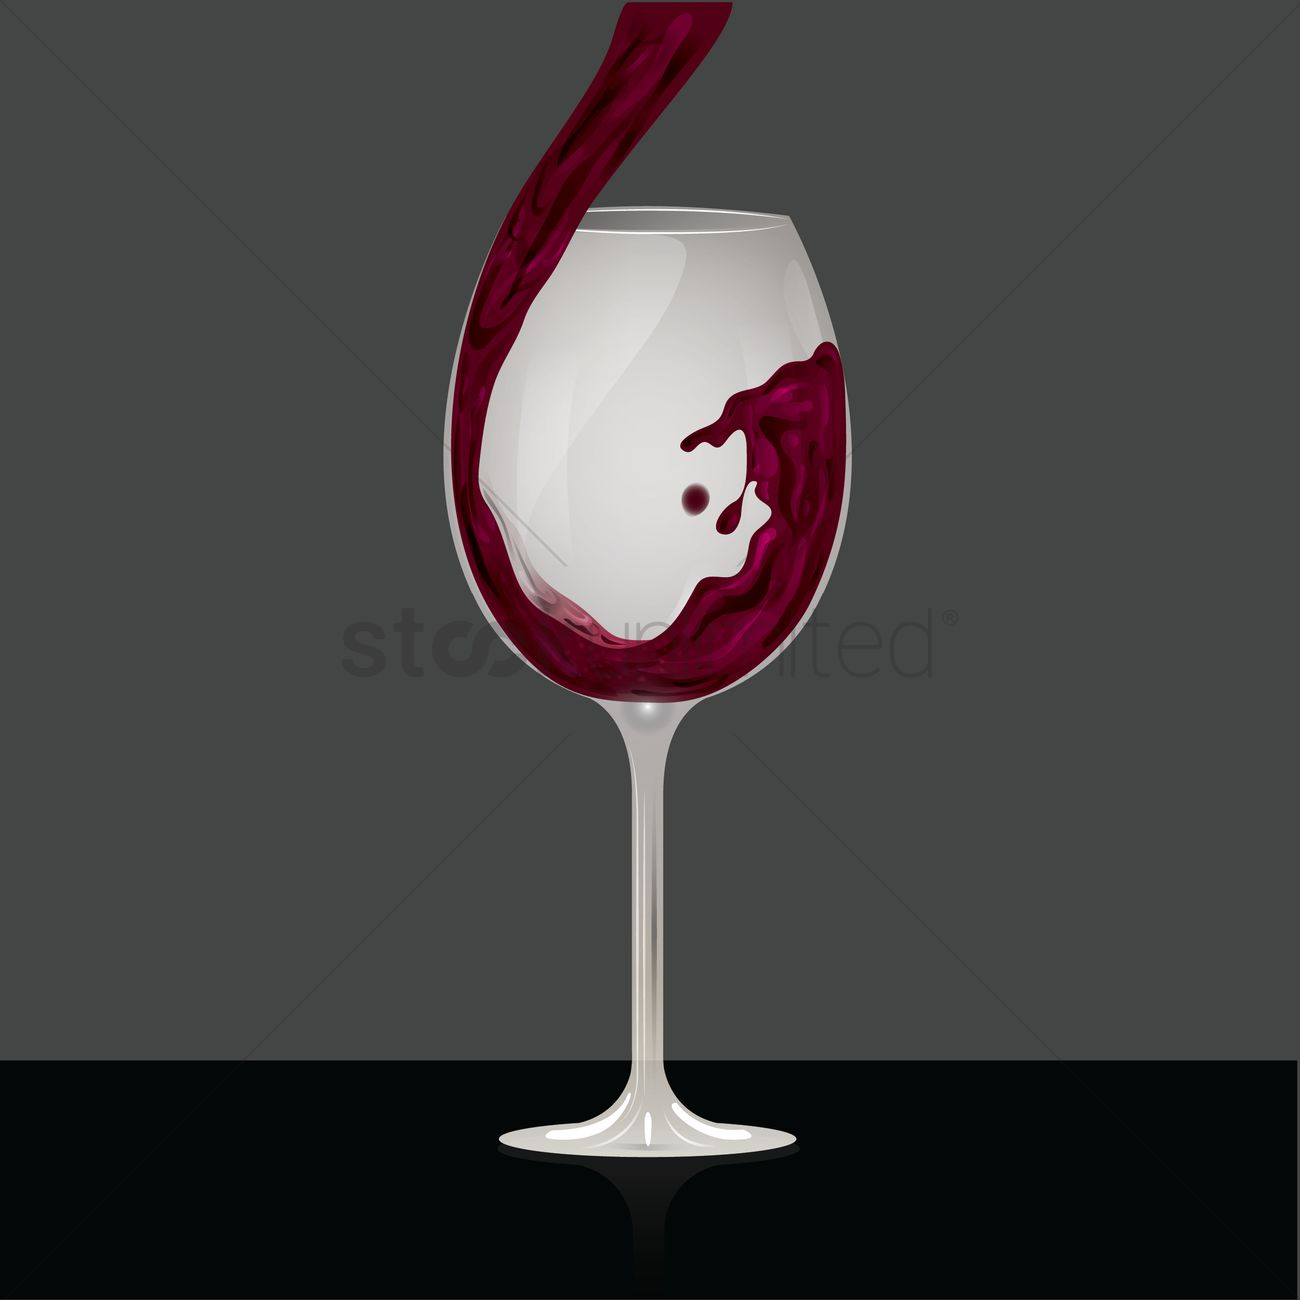 red wine pouring into glass vector image 1517650 stockunlimited